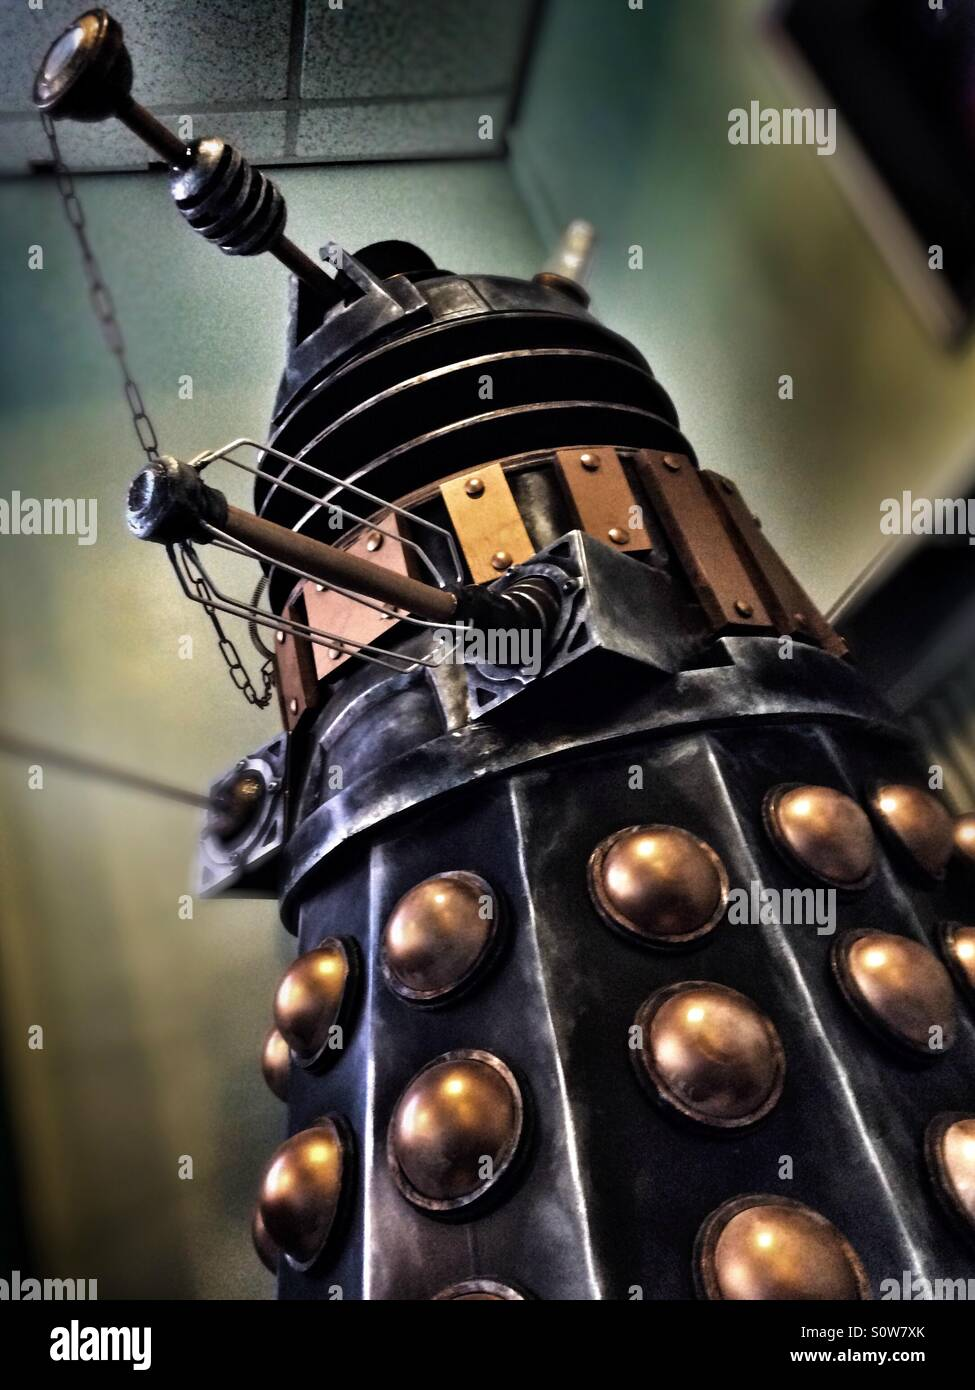 Dalek from Doctor Who - Stock Image